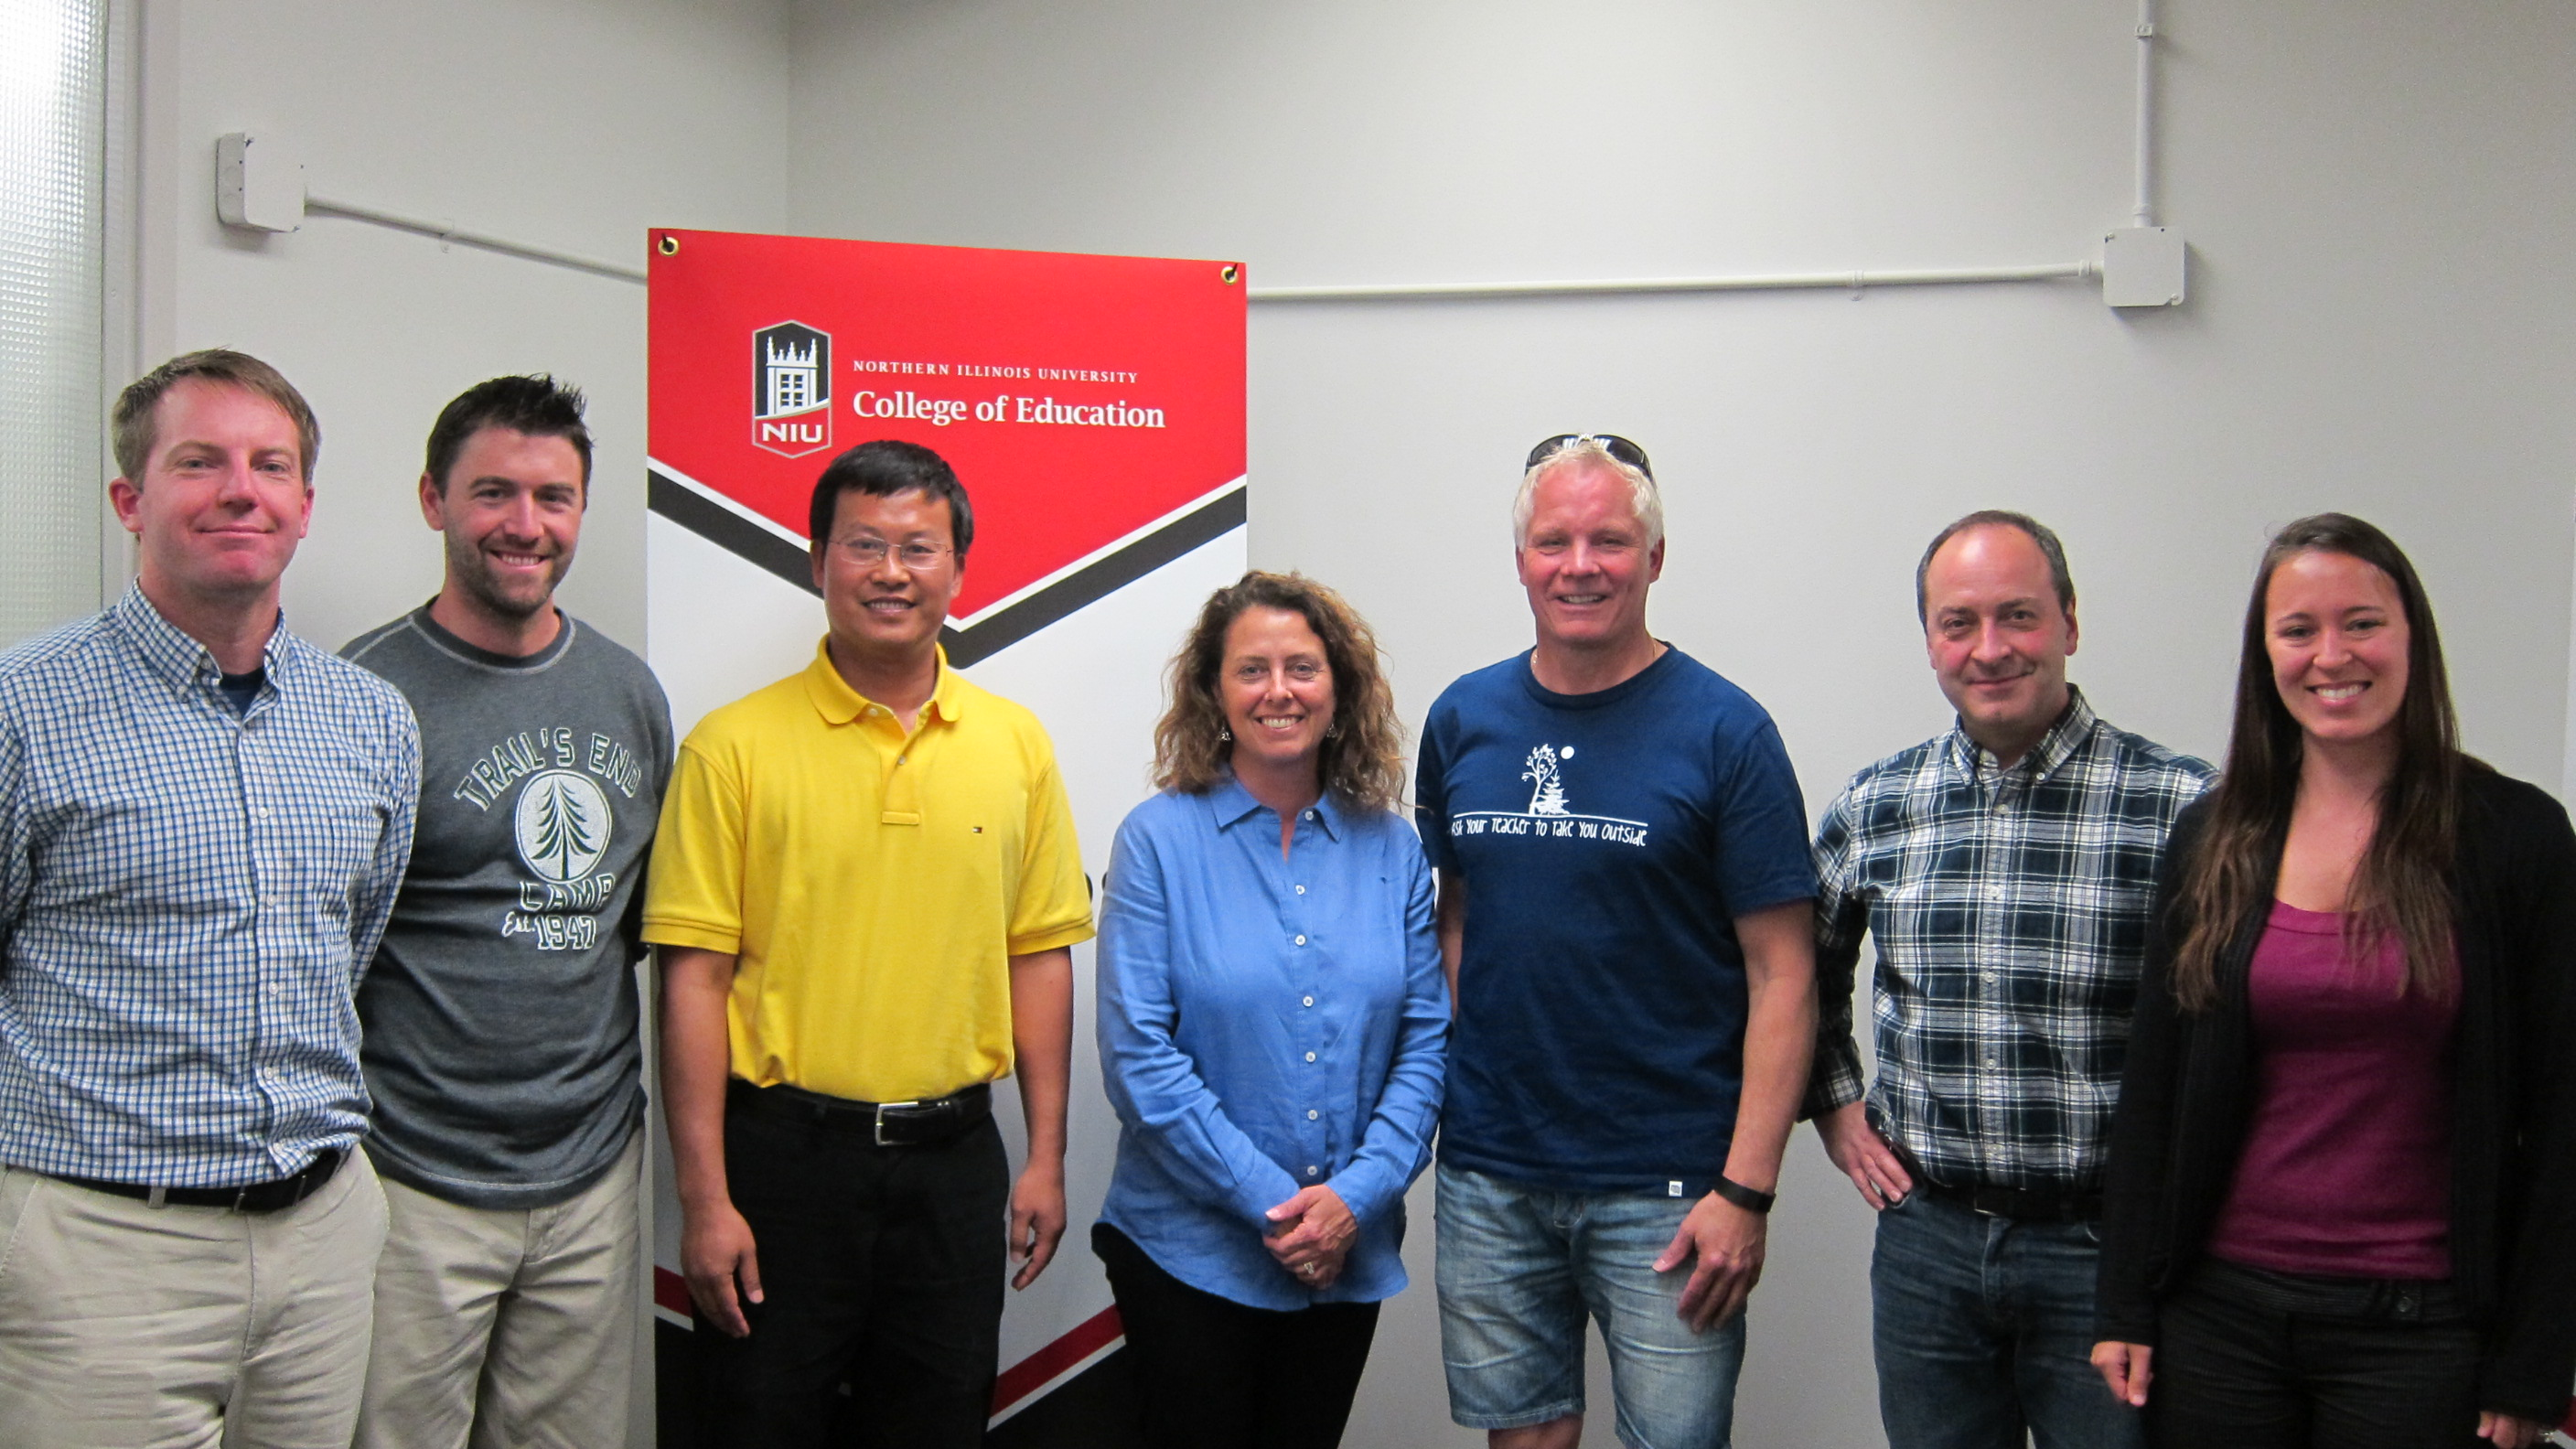 (L to R) Dr. Jim Ressler, Assistant Professor, Dept of KNPE, NIU Dr. Zach Wahl-Alexander, Assistant Professor, Dept of KNPE, NIU Dr. Xia Wen, Professor, Institute of Physical Education, at Yunnan University in China Lynette Spencer, Director of Adventure Works, DeKalb County Dr. Nick Forsberg, Professor, Health, Outdoor, Physical Education Program, University of Regina, Saskatchewan, Canada Dr. Paul Wright, Professor, Dept of KNPE, NIU Dr. Jenn Jacobs, Visiting Assistant Professor, Dept of KNPE, NIU